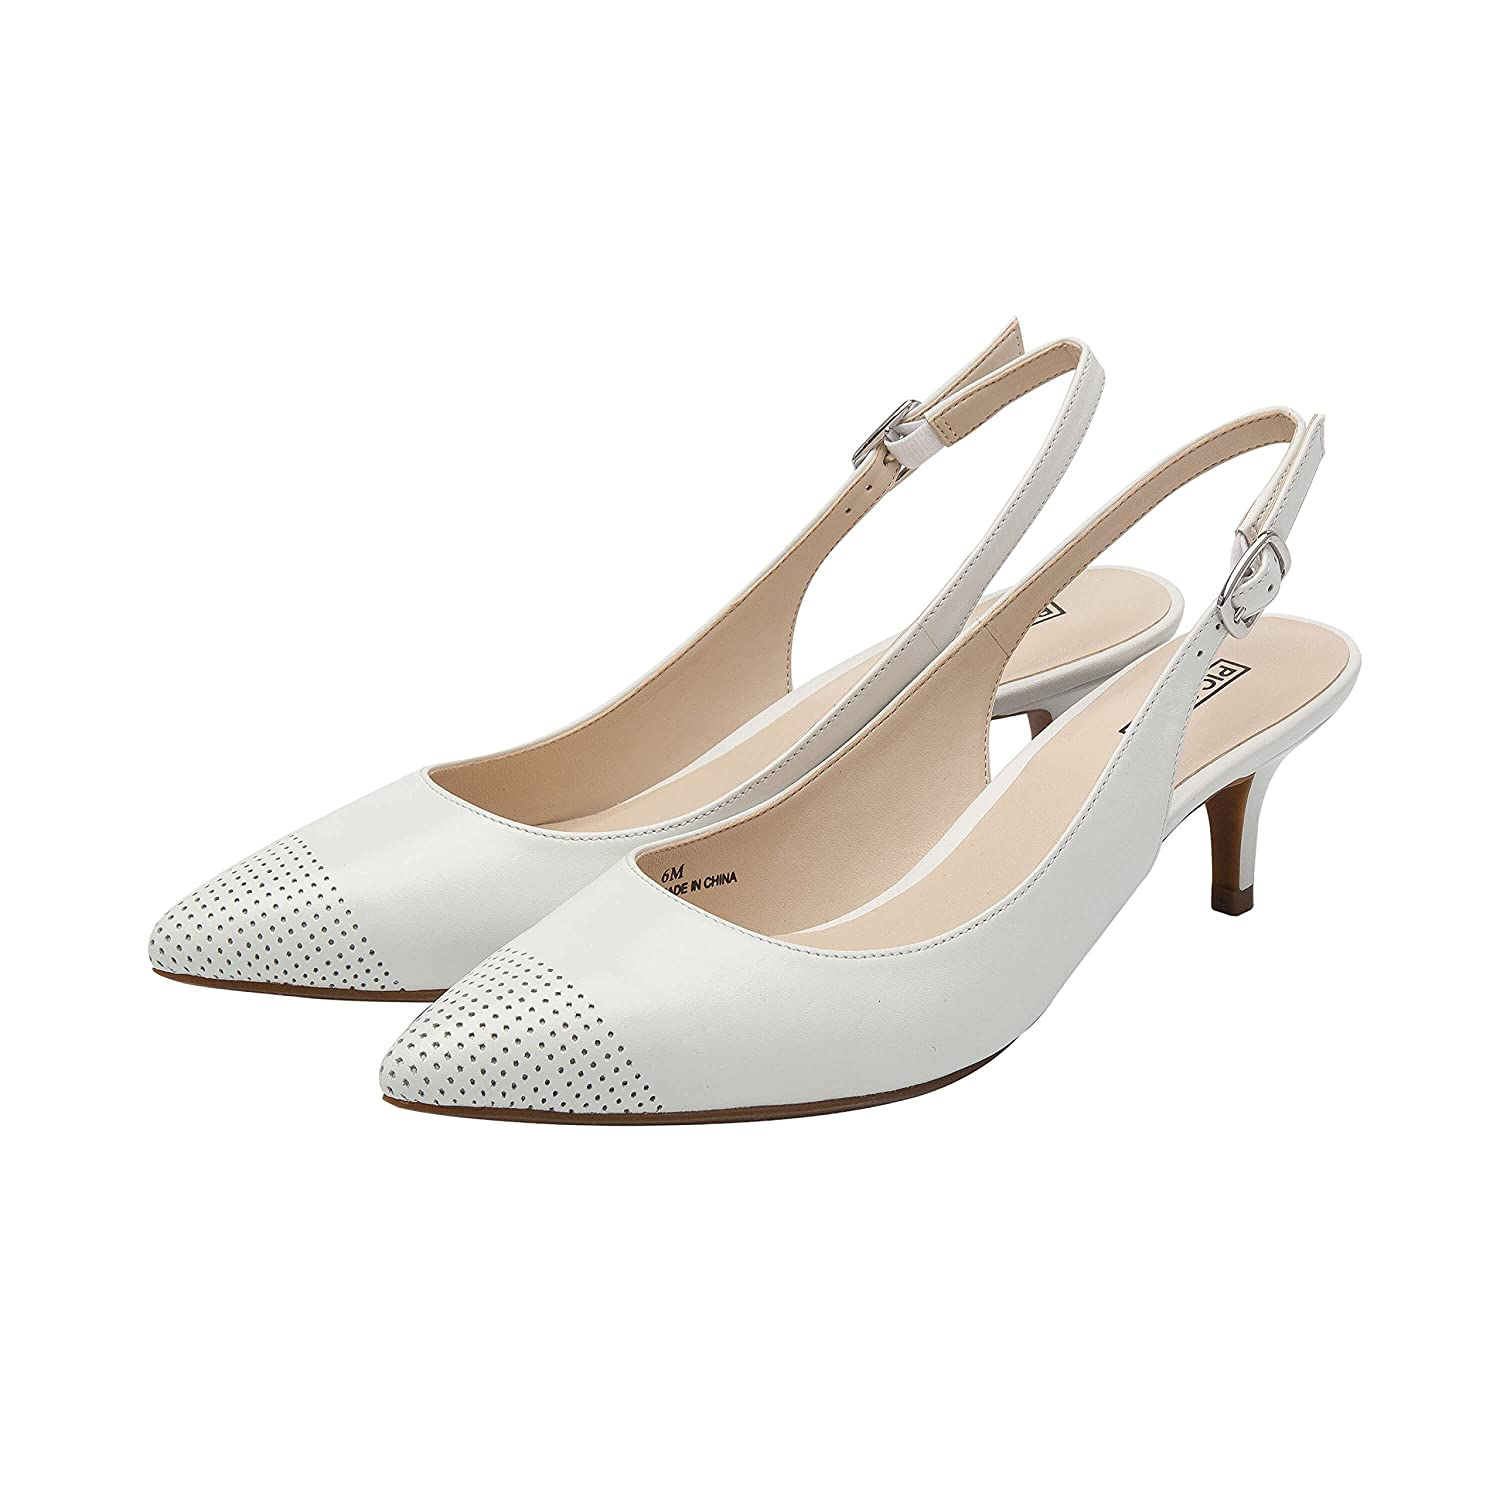 Hazel Perforated | Women's Low Heel Perforated Hazel Cap Toe Comfortable Slingback Pump B07B6B8VFY 8 B(M) US|White Leather 4e4958